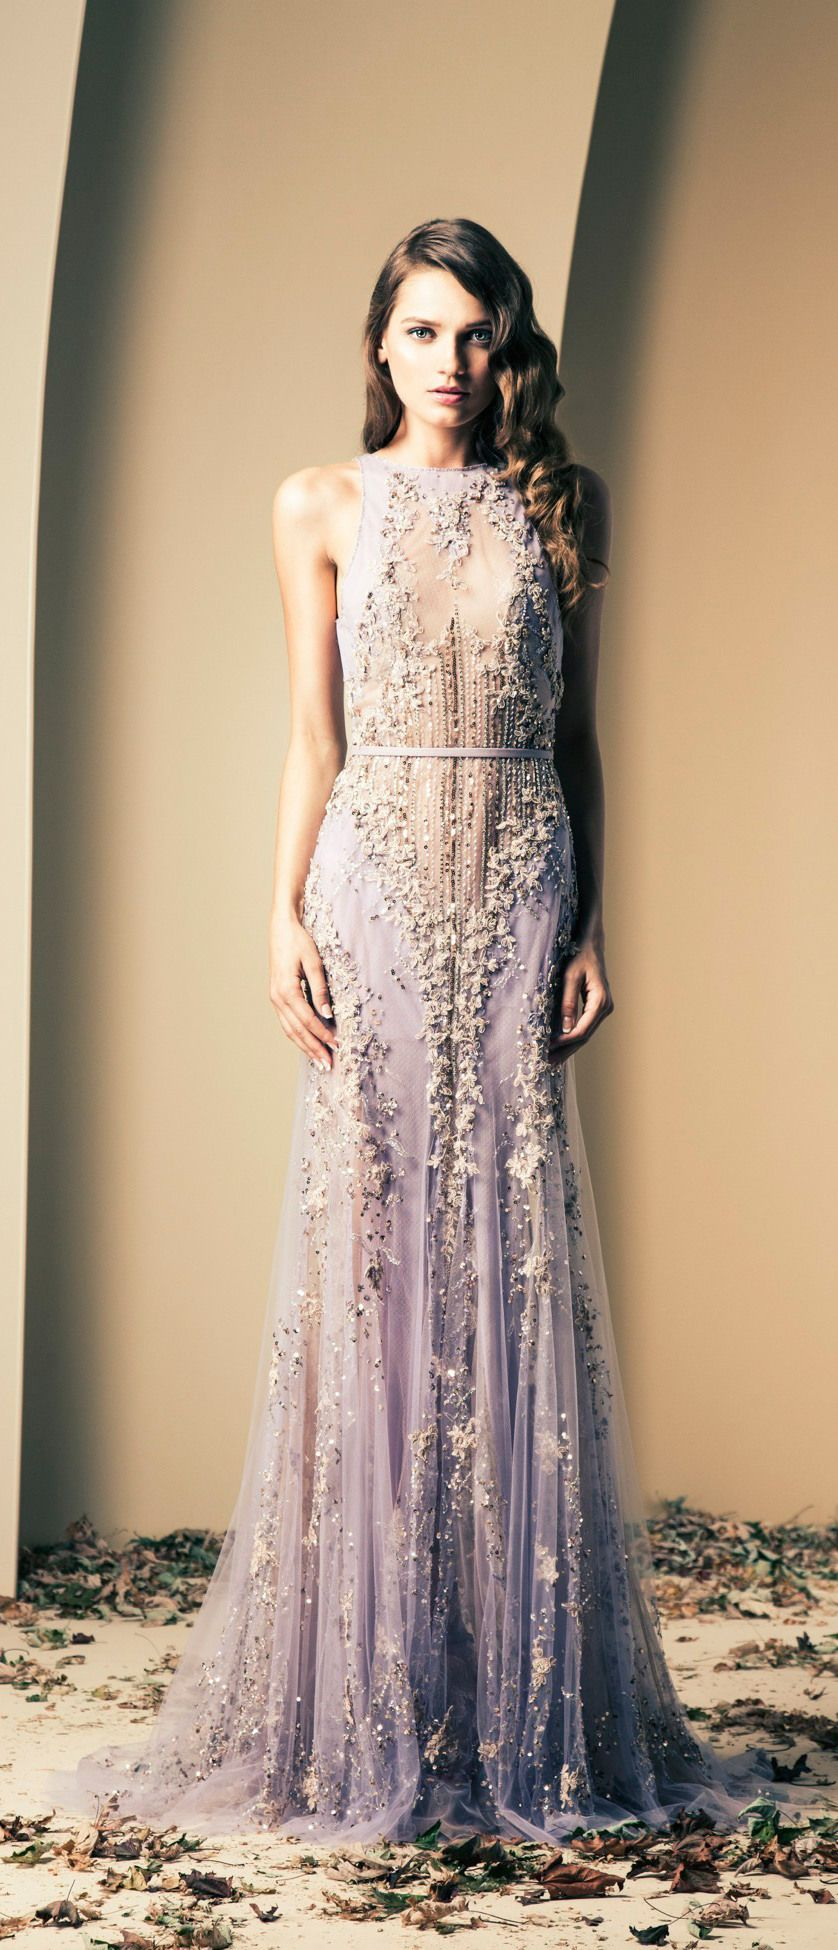 Ziad nakad lavender sequin embellished wedding gown gowns